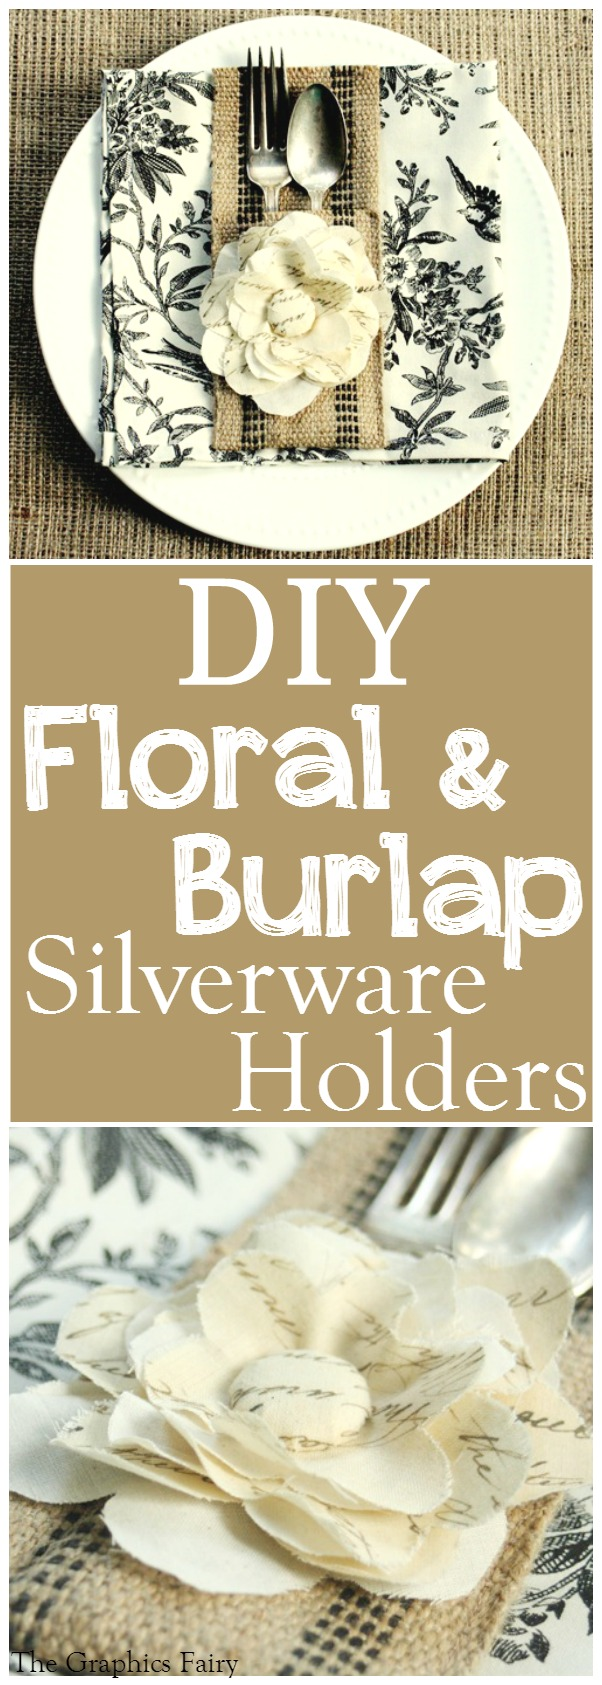 DIY Floral & Burlap Silverware Holders - The Graphics Fairy